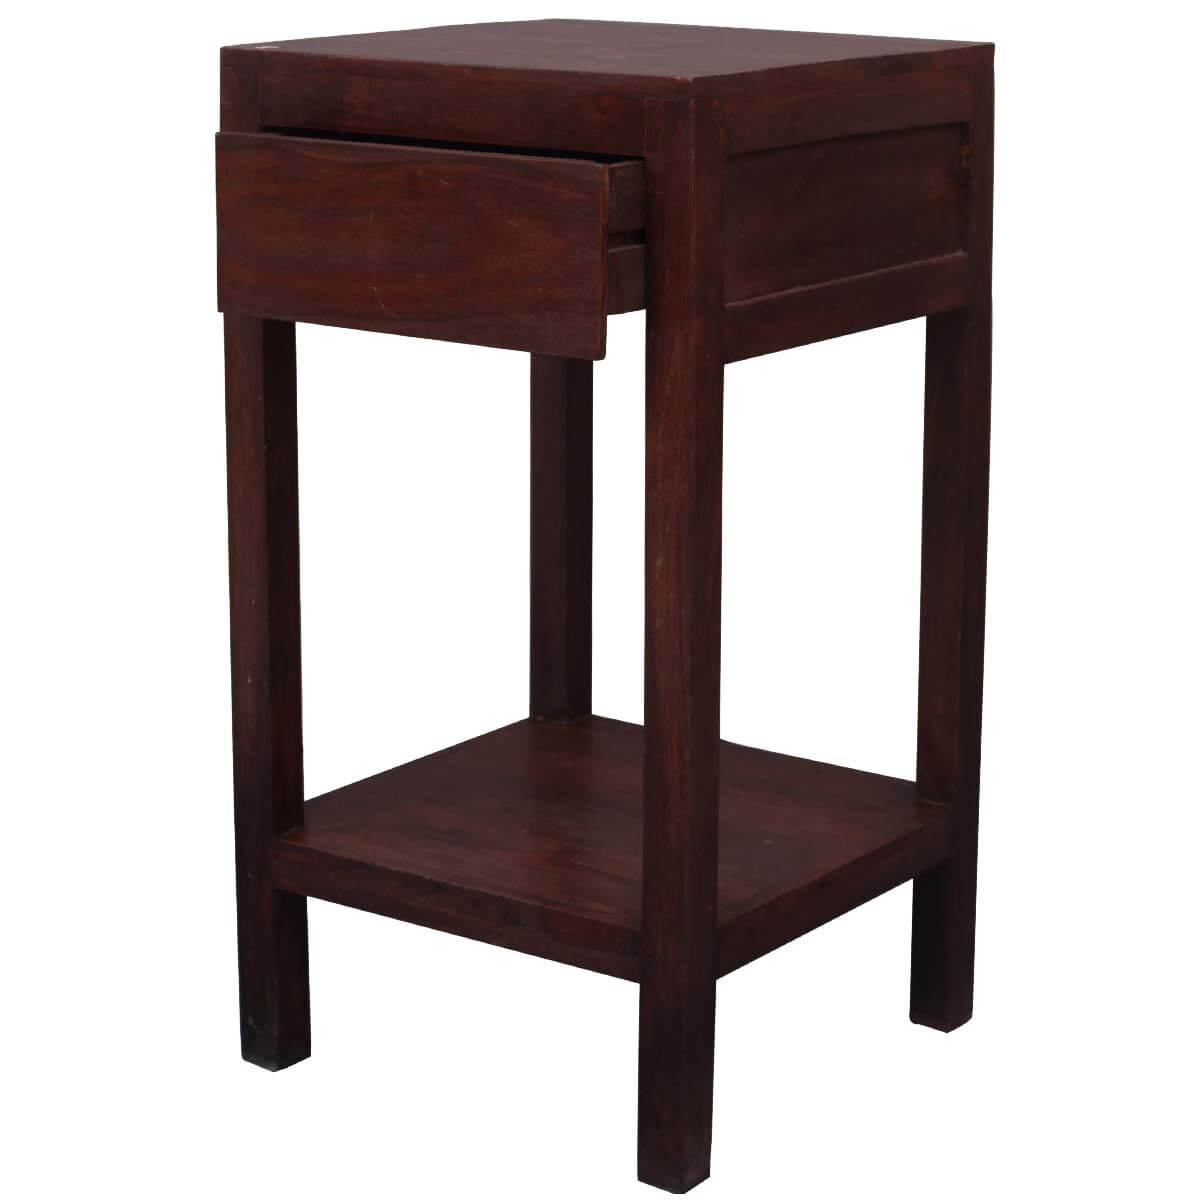 Zairo contemporary solid wood 3 tier 1 drawer end table for 1 drawer table